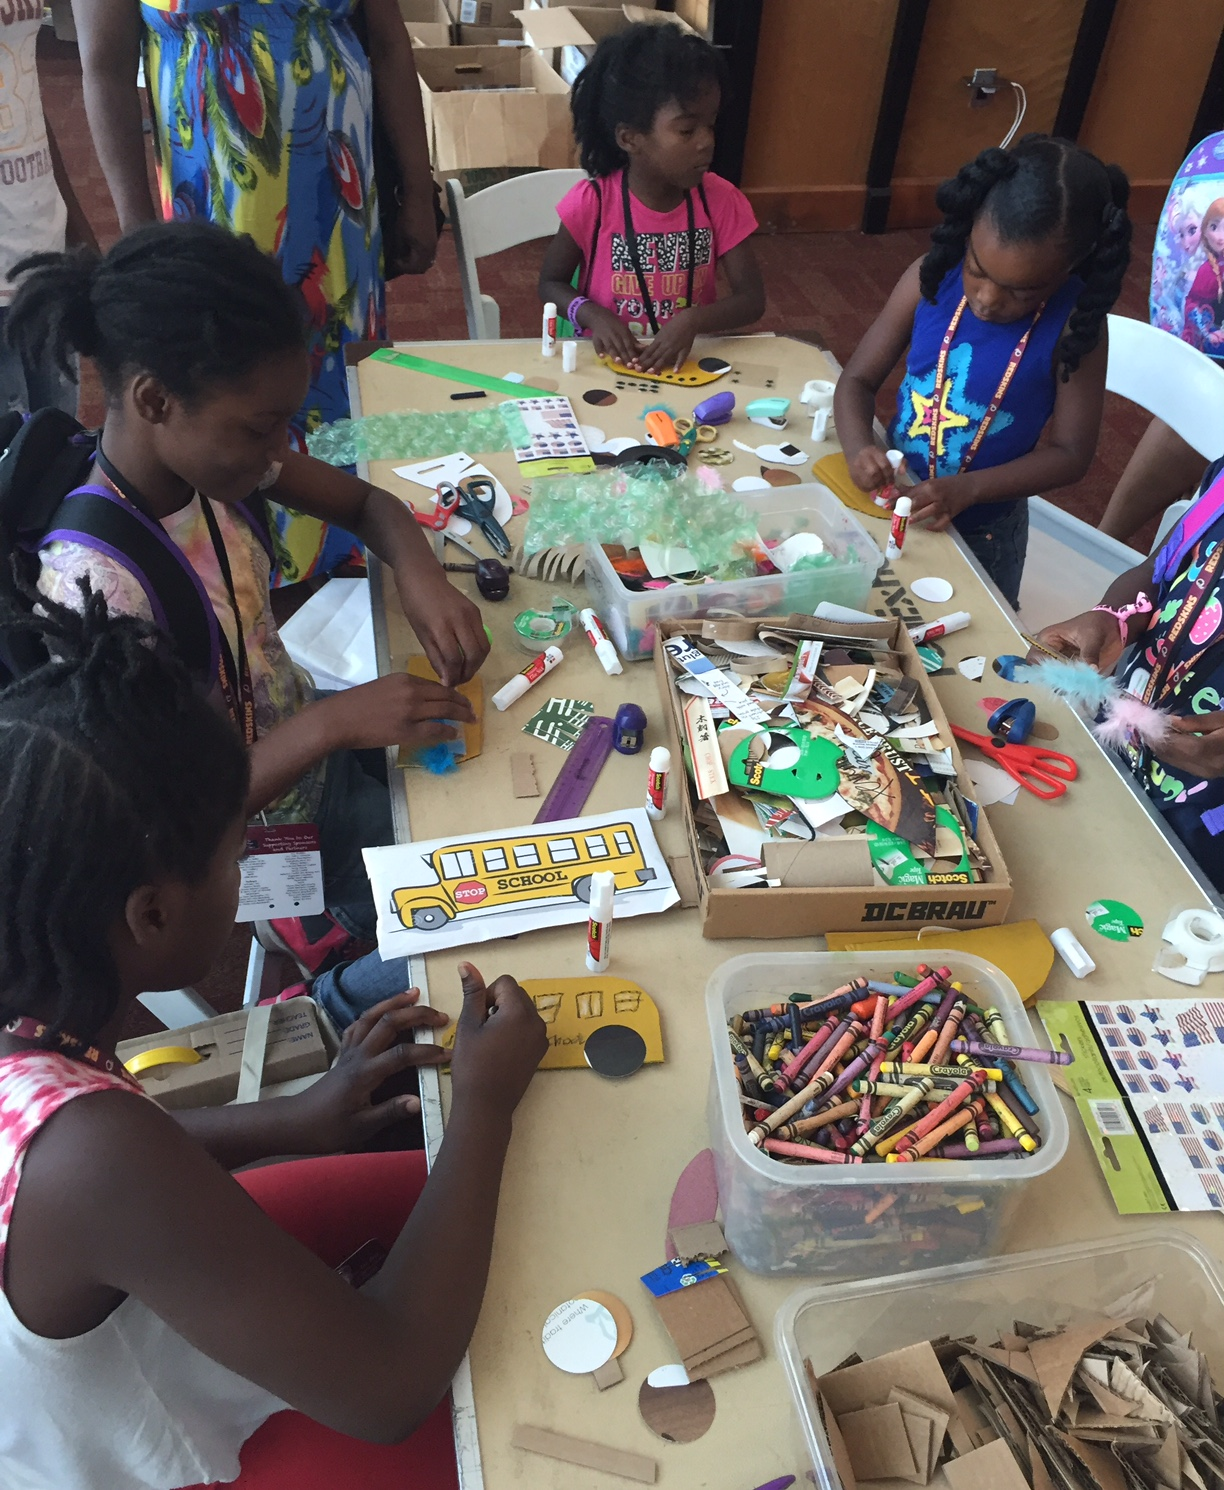 Redskins 'Back to School' Community Crafting at FedEx Field Aug, 2016